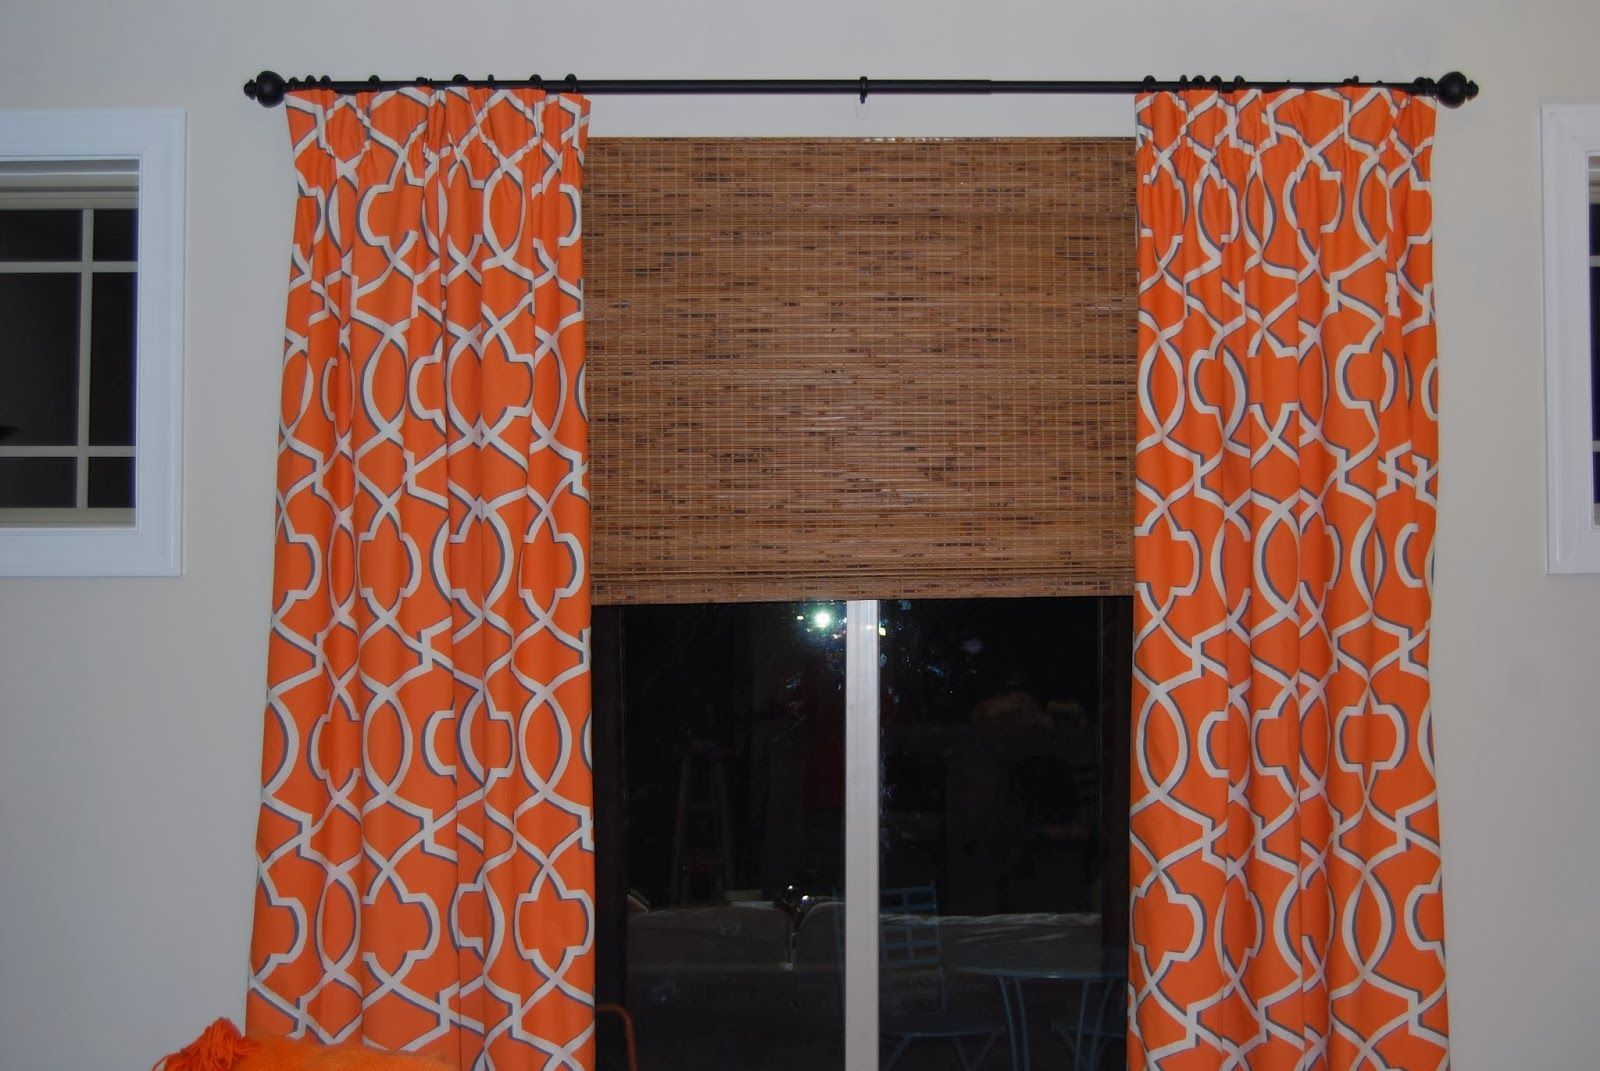 Home Chic Raleigh Orange Curtains Patterned Curtains Geometric